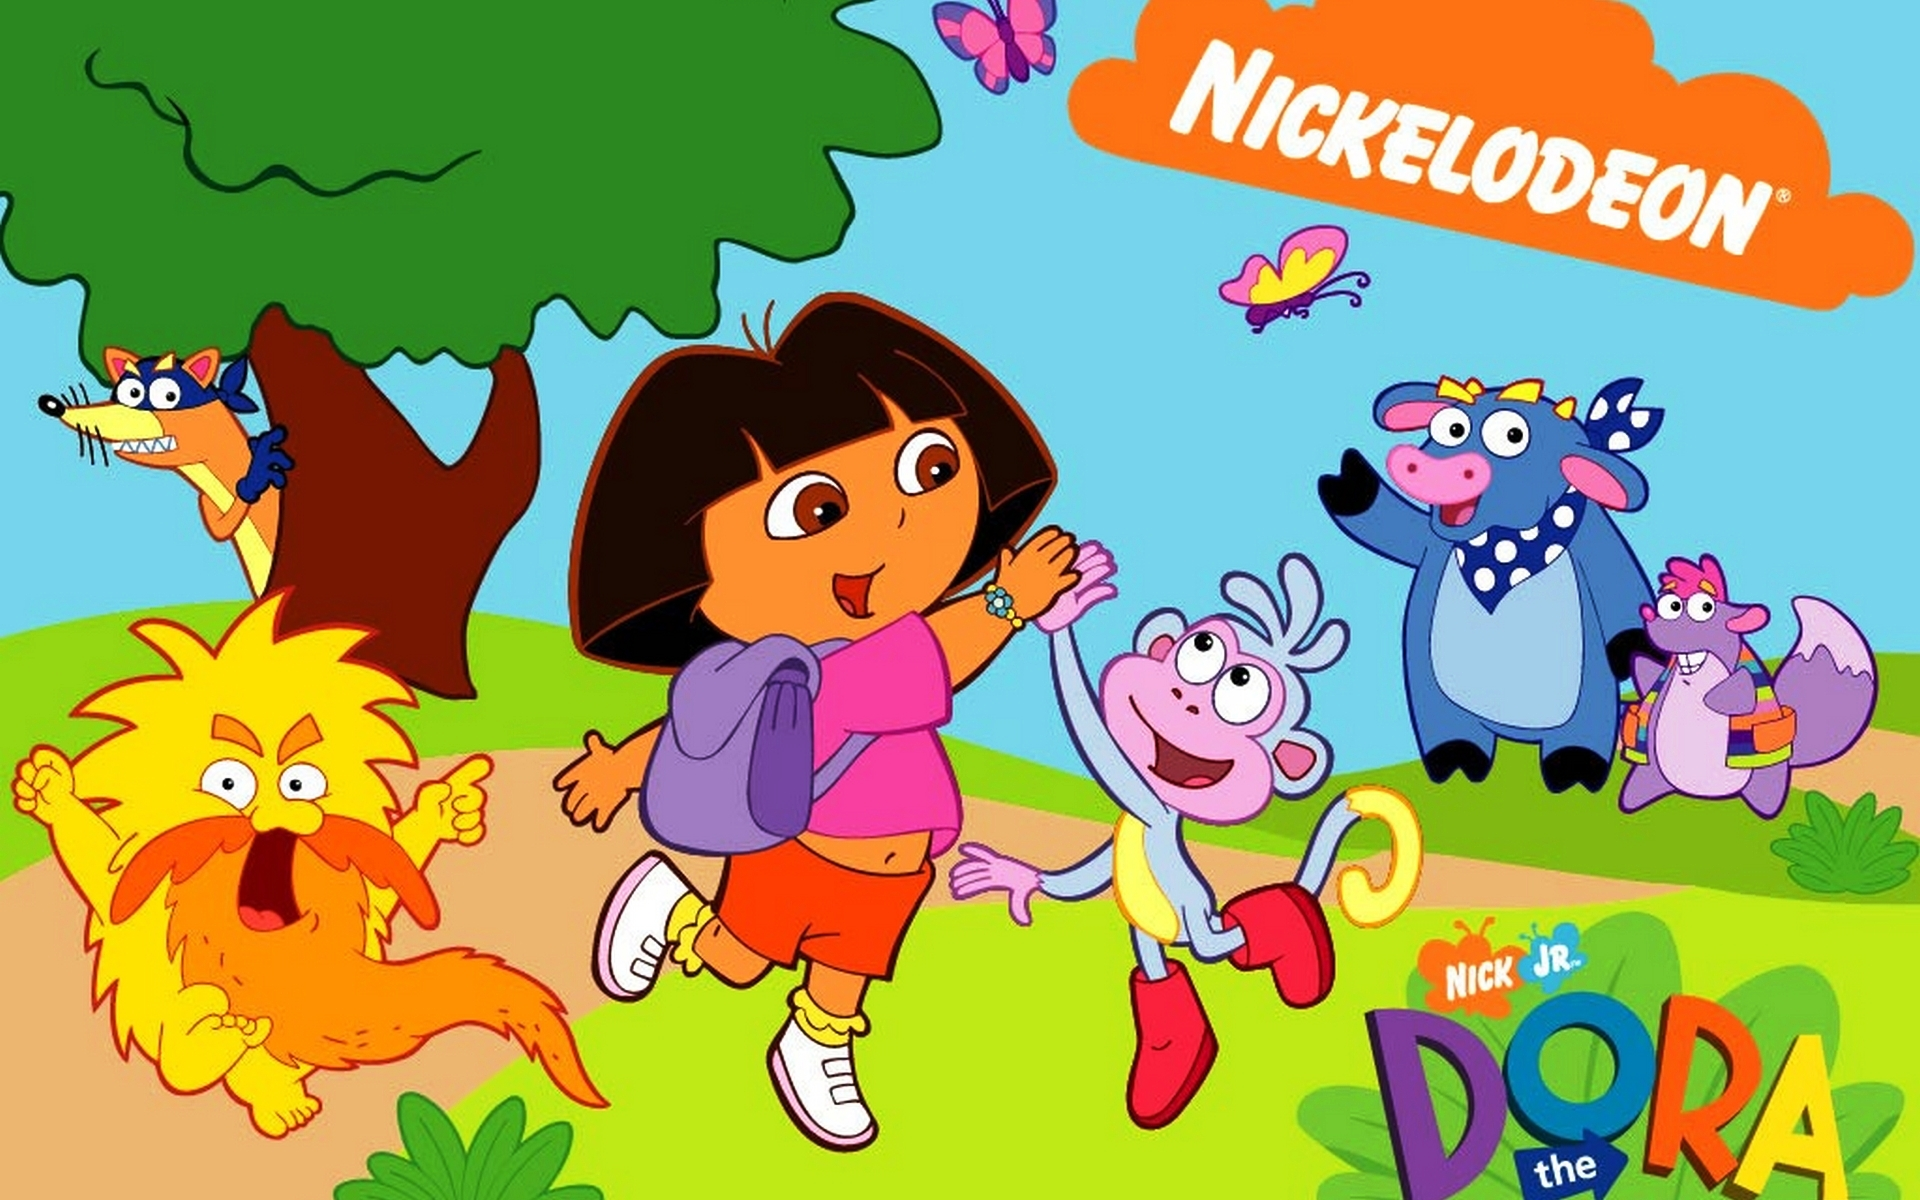 Dora the Explorer tq wallpaper 1920x1200 184641 1920x1200